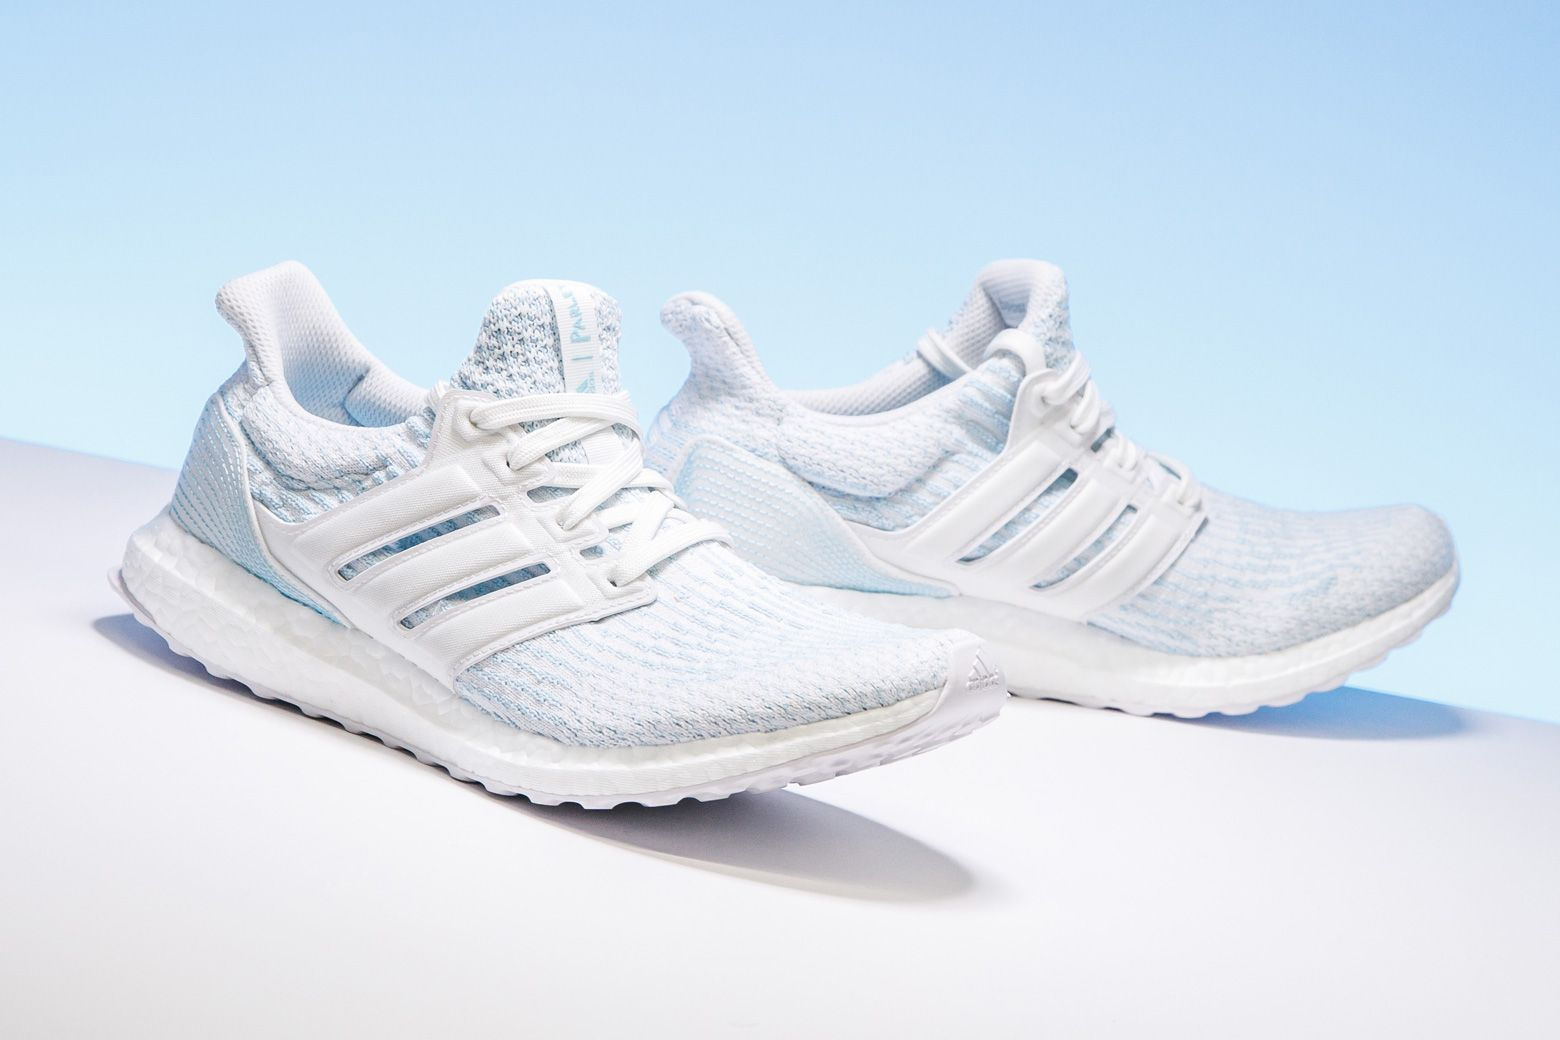 837be429d5892 This Parley x adidas Ultra Boost collab brings awareness to coral  bleaching